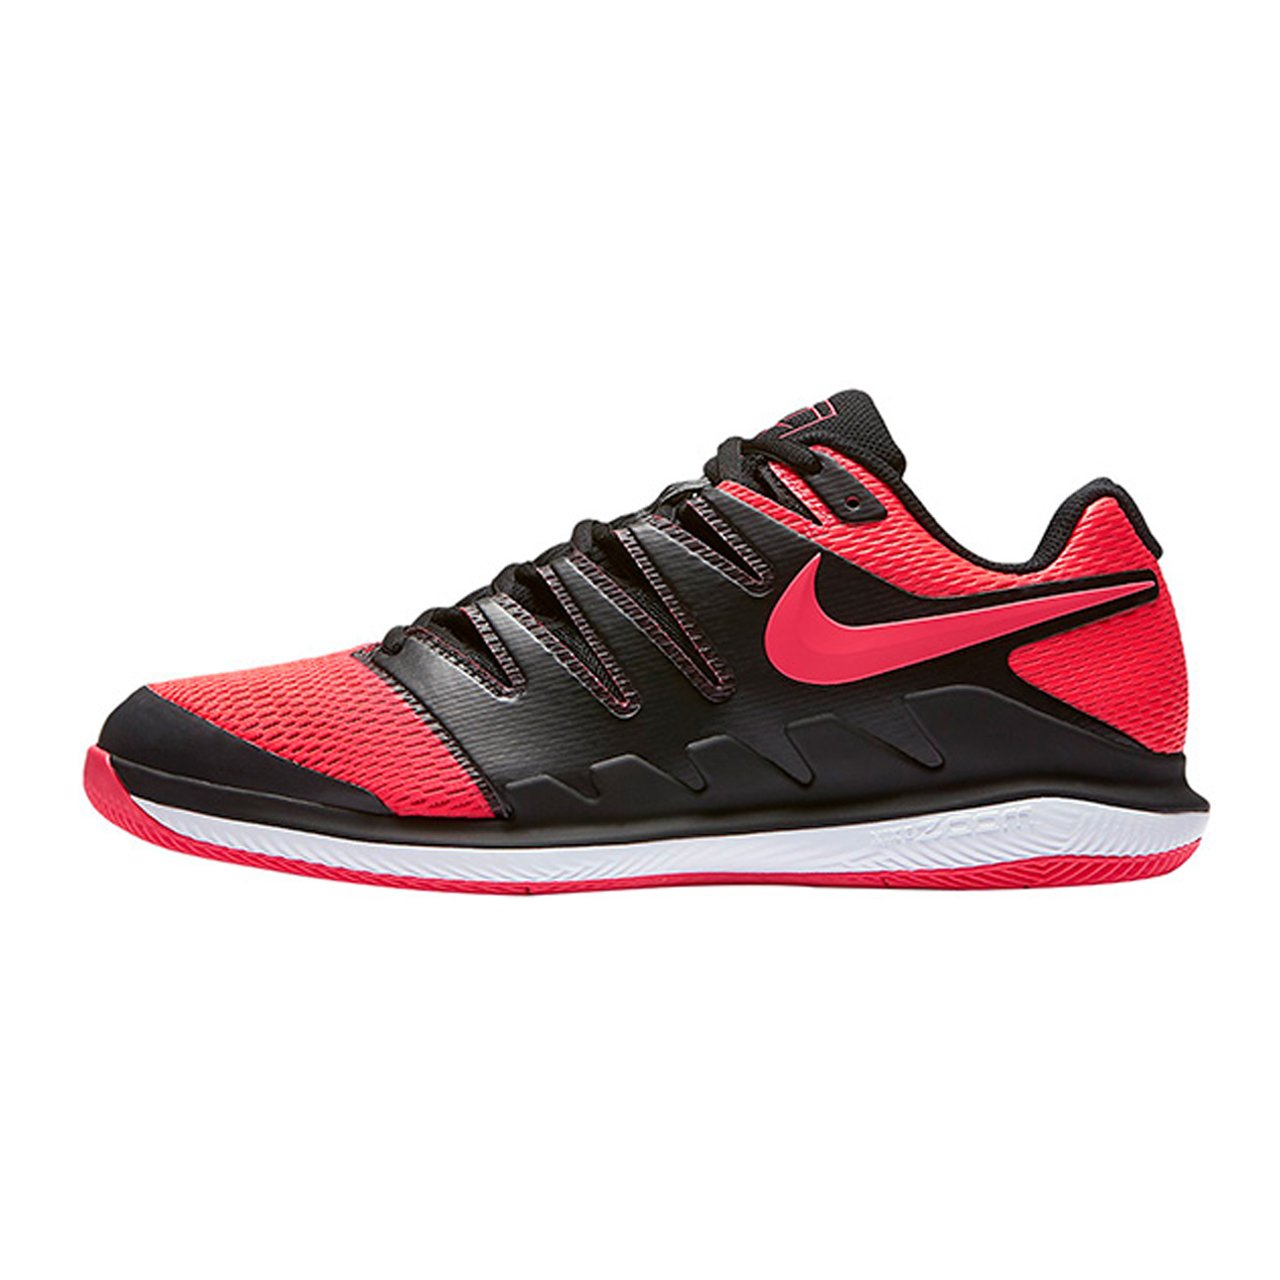 ef333b1257f14 NIKE Men's Zoom Vapor X Tennis Shoes (9 D(M) US, Black/Solar Red/White)